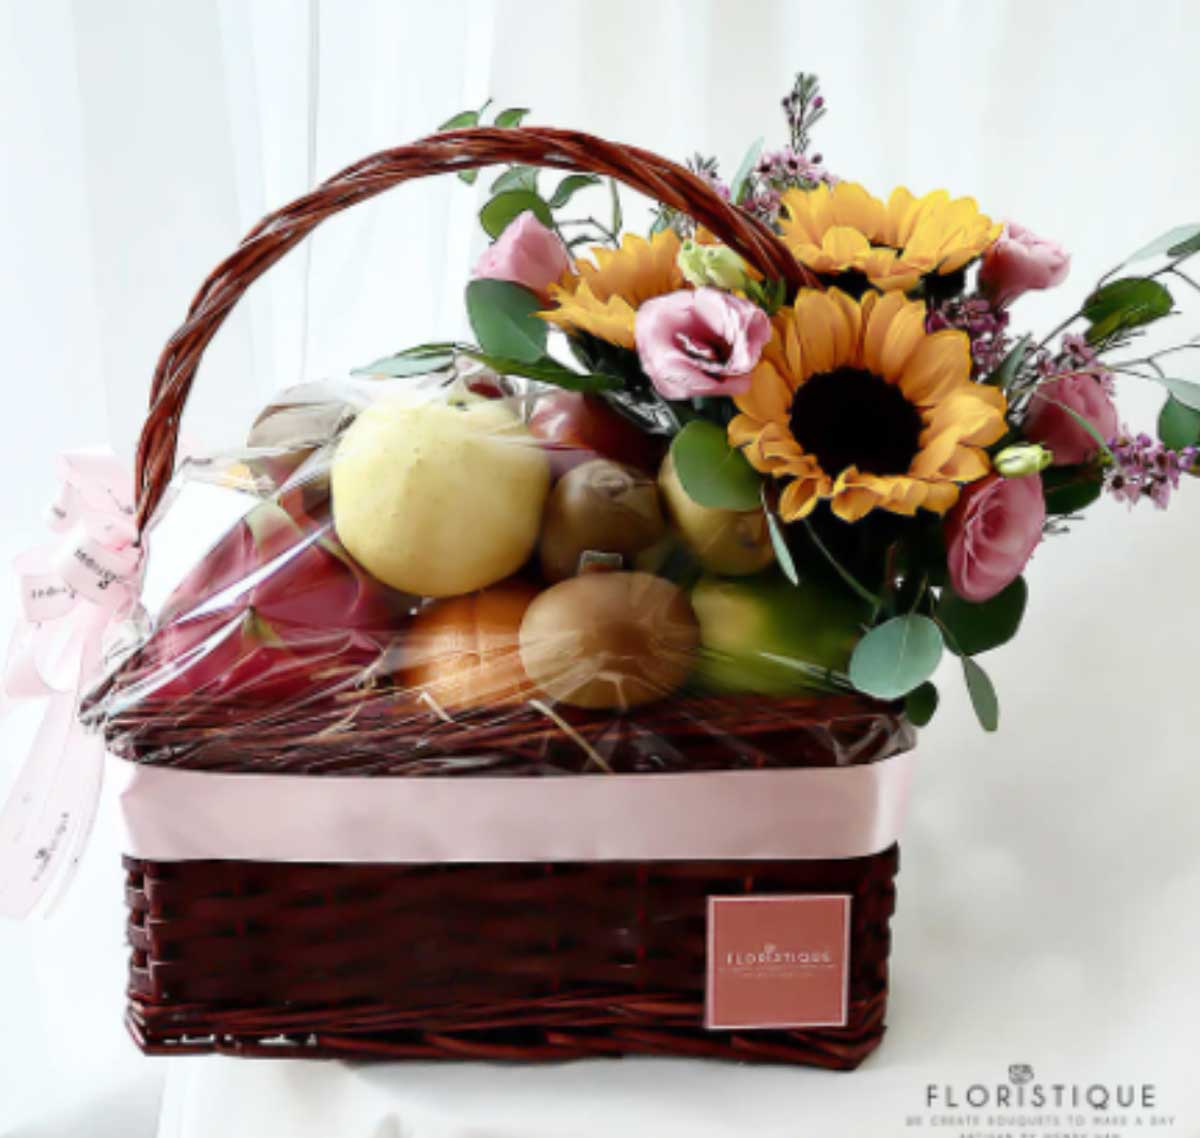 Hampers is considered